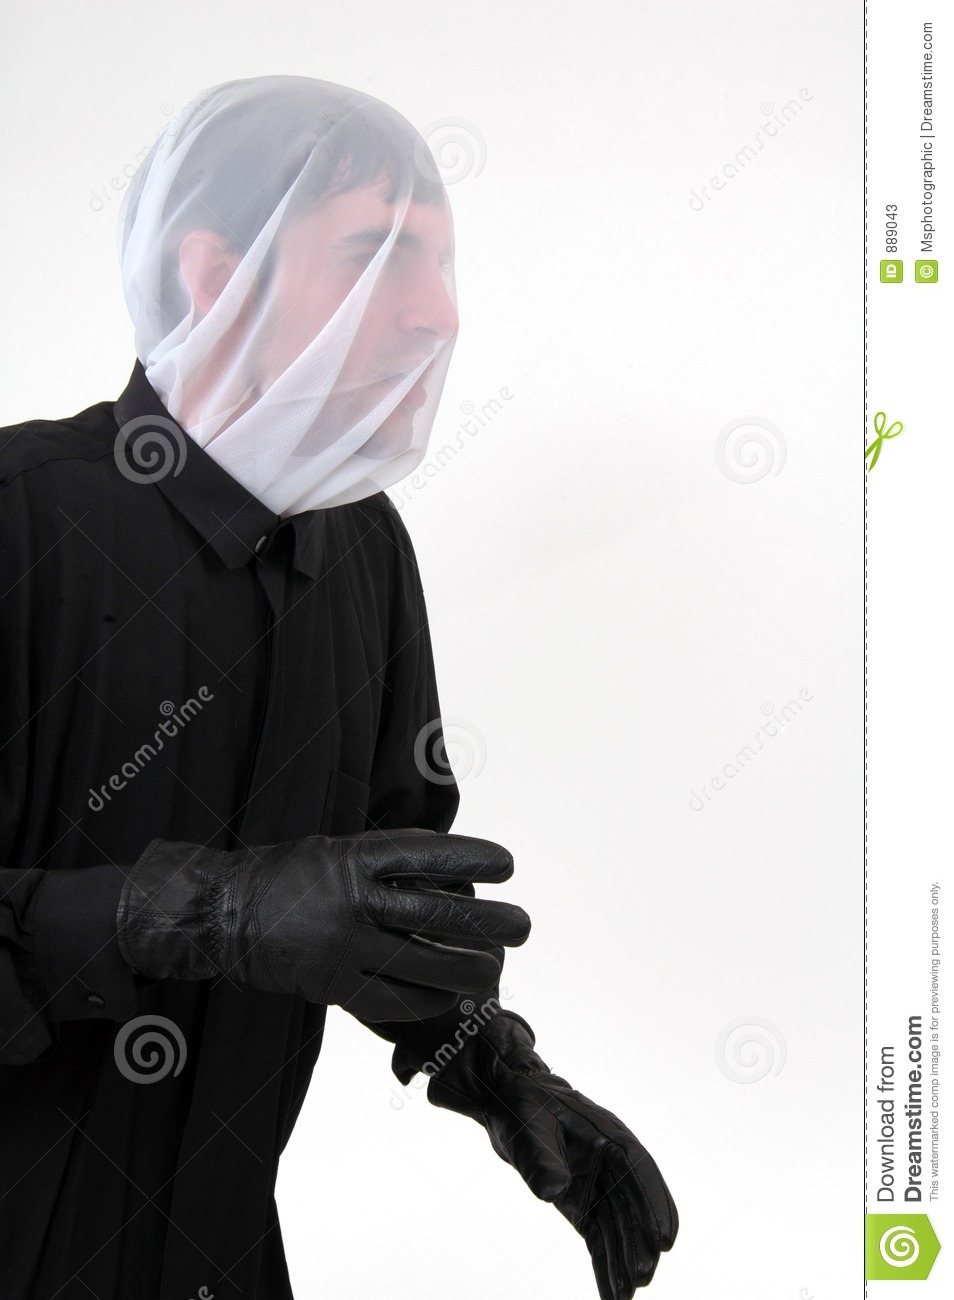 burgler stock image image of male black thief clothes 889043